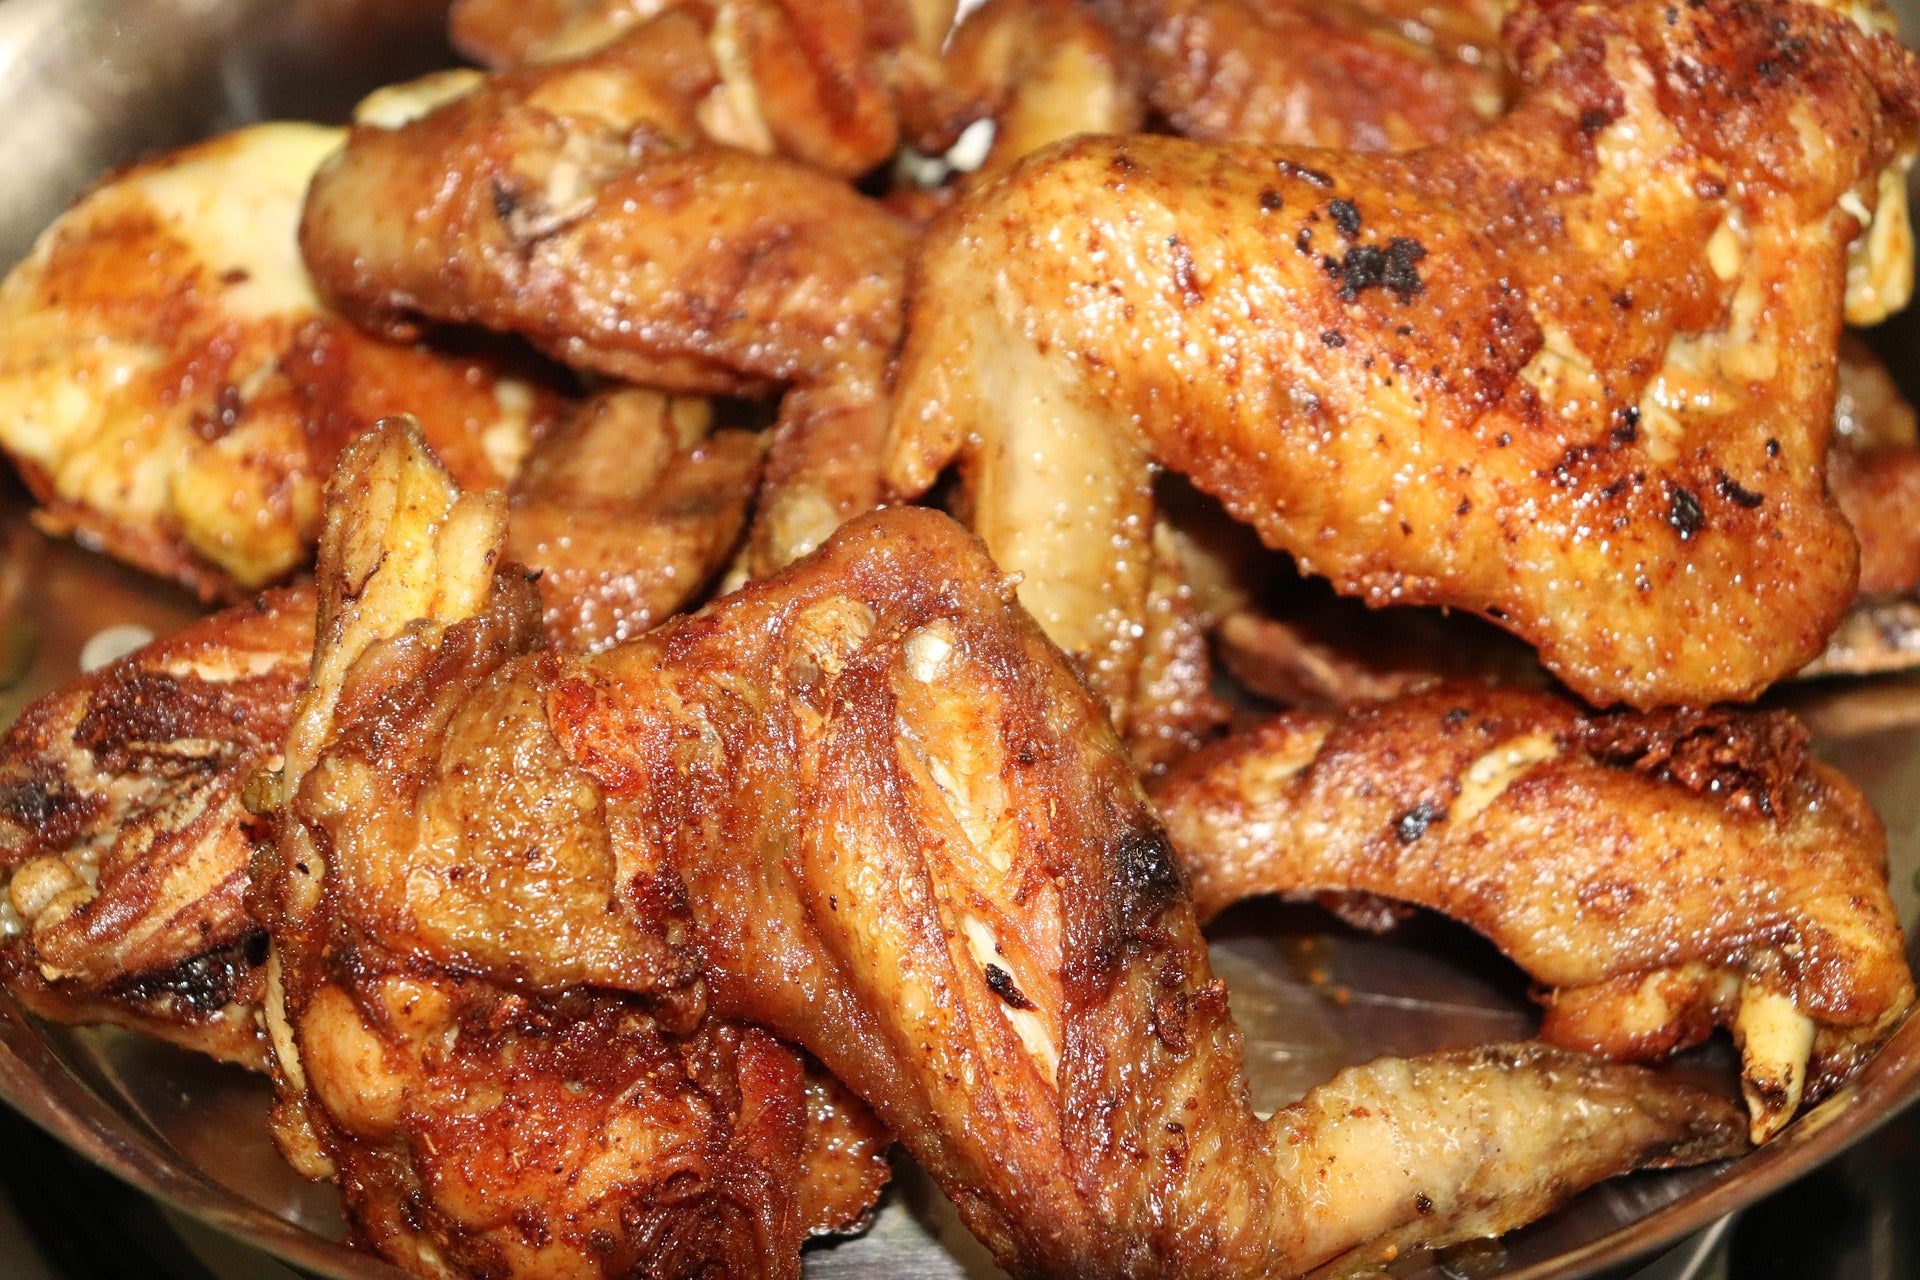 Chicken wings - various sizes